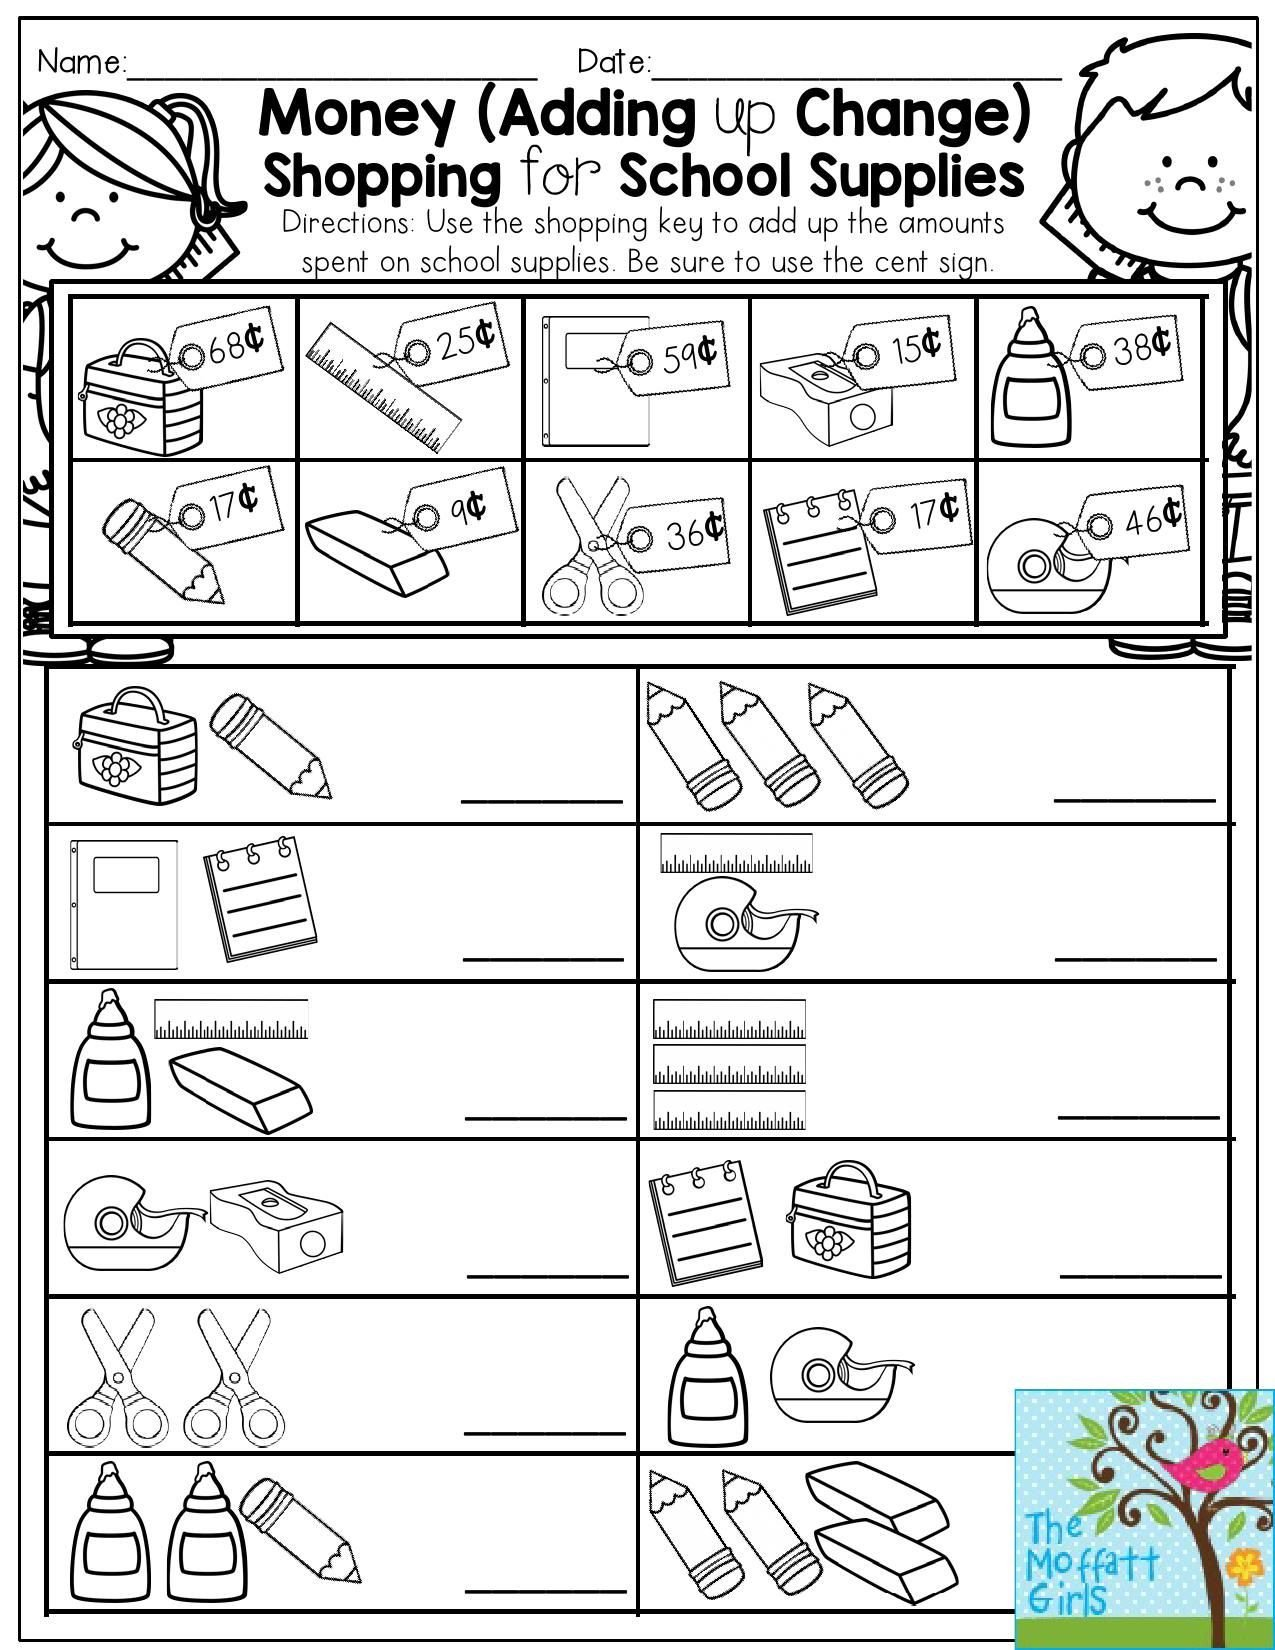 Counting Change Back Worksheets Money Adding Up Change Shopping for School Supplies Fun